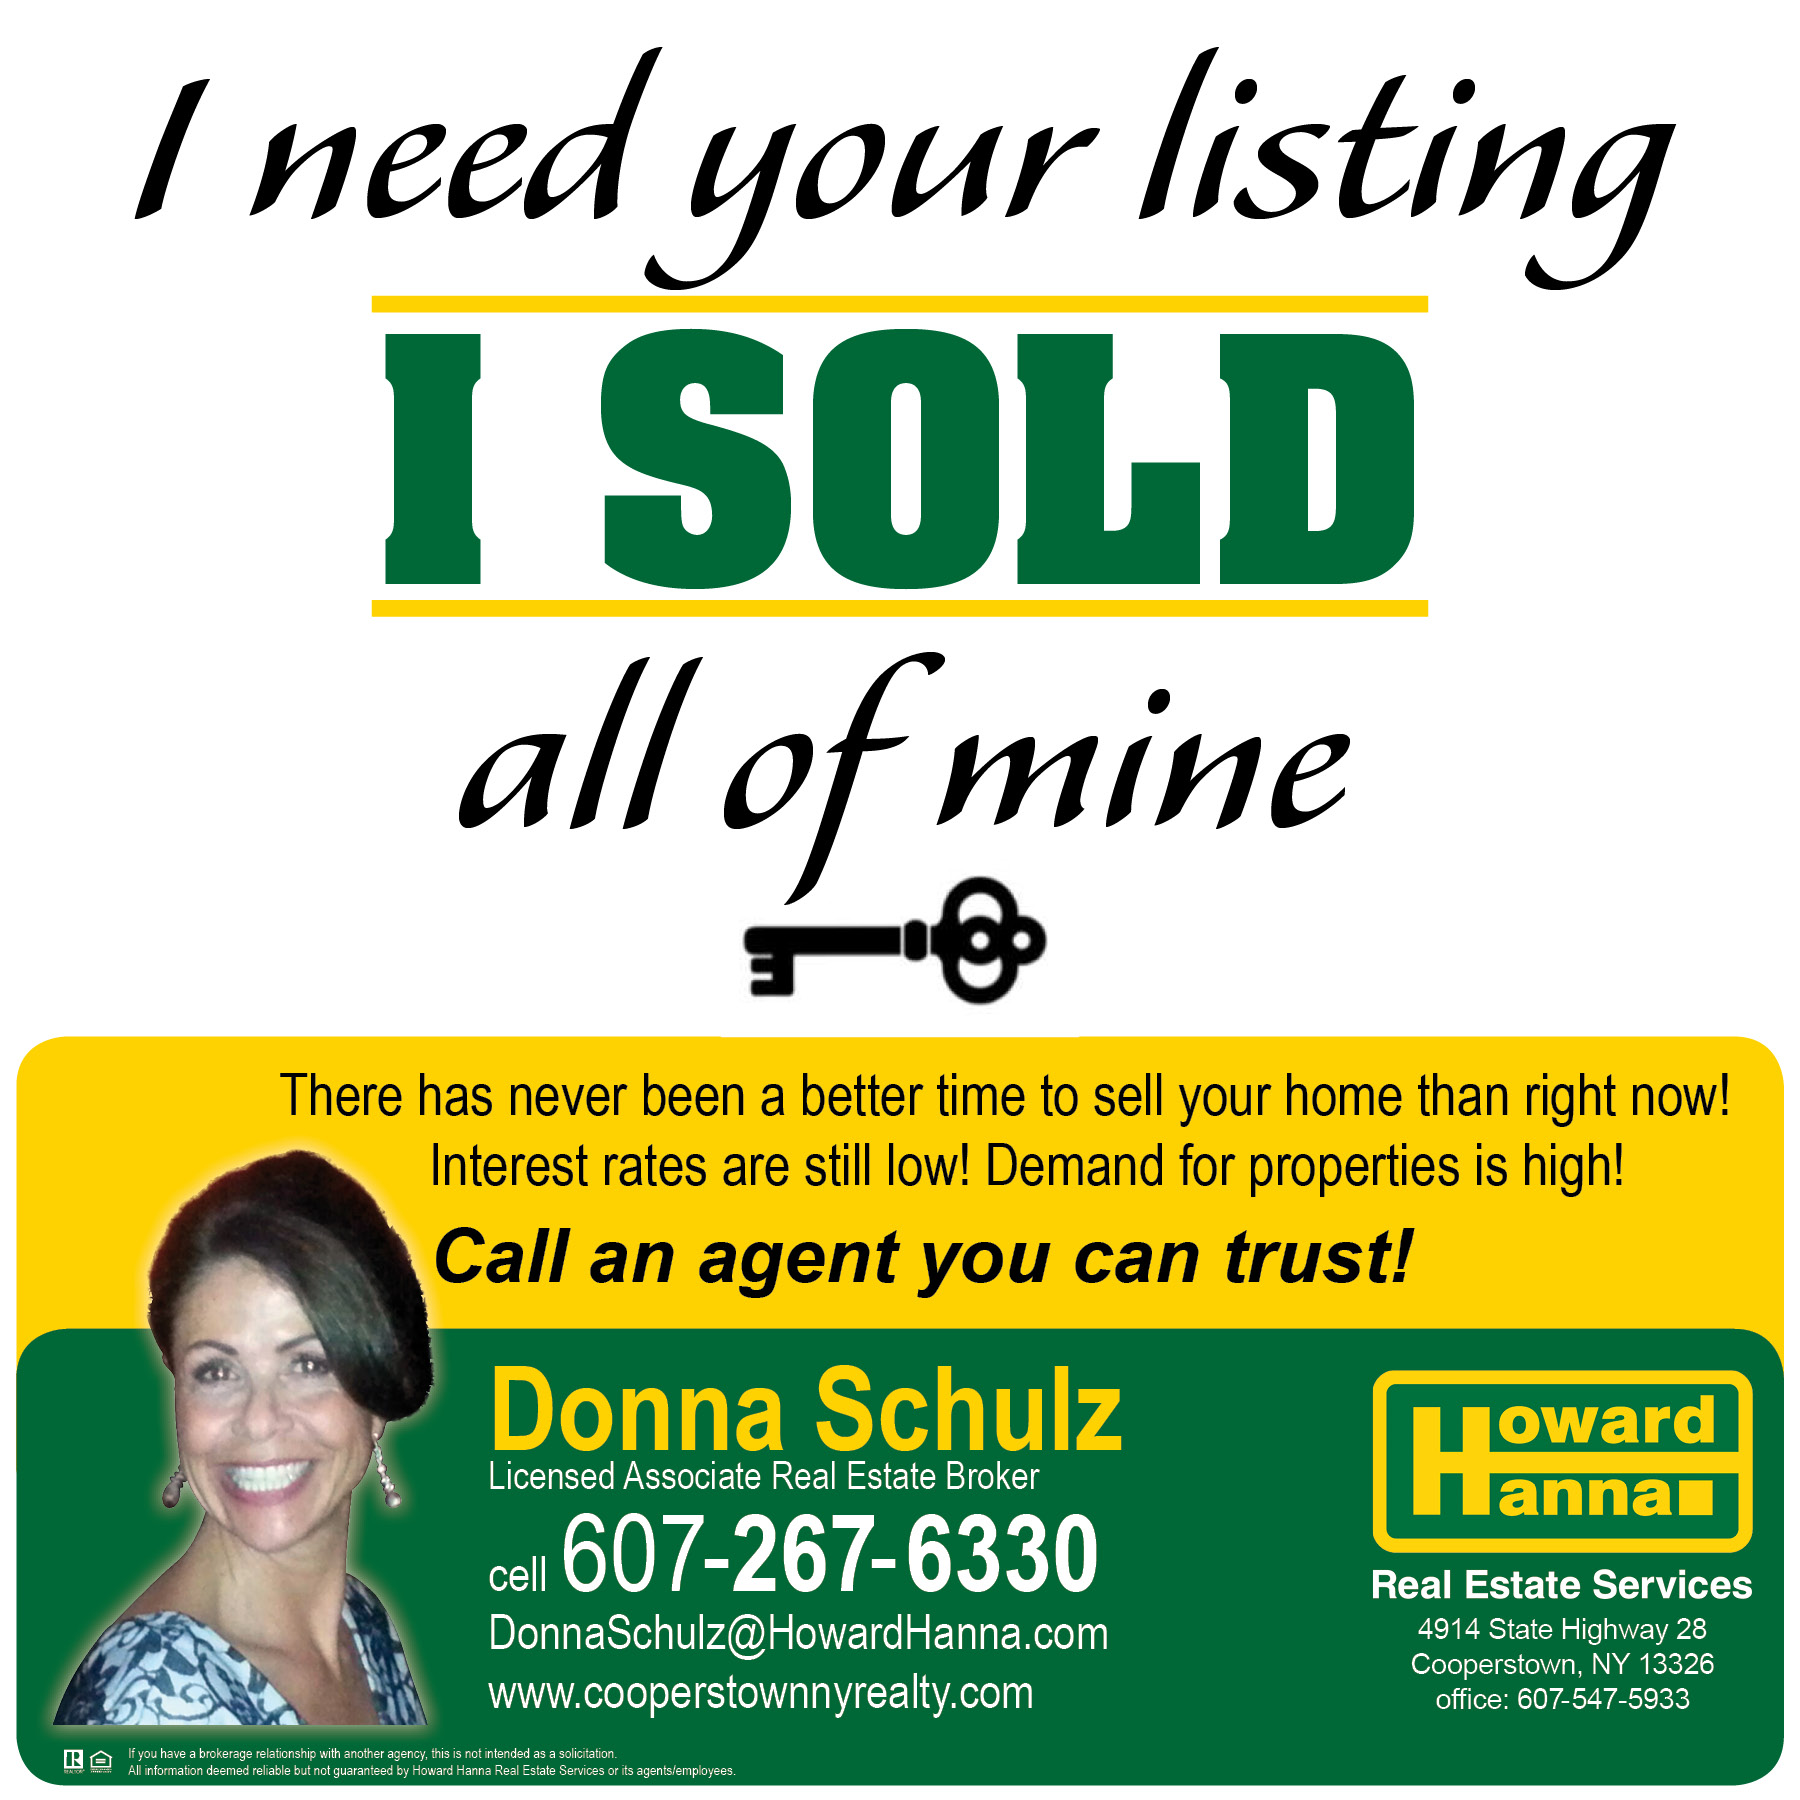 Donna Schulz can help you find the perfect home! Call her today!